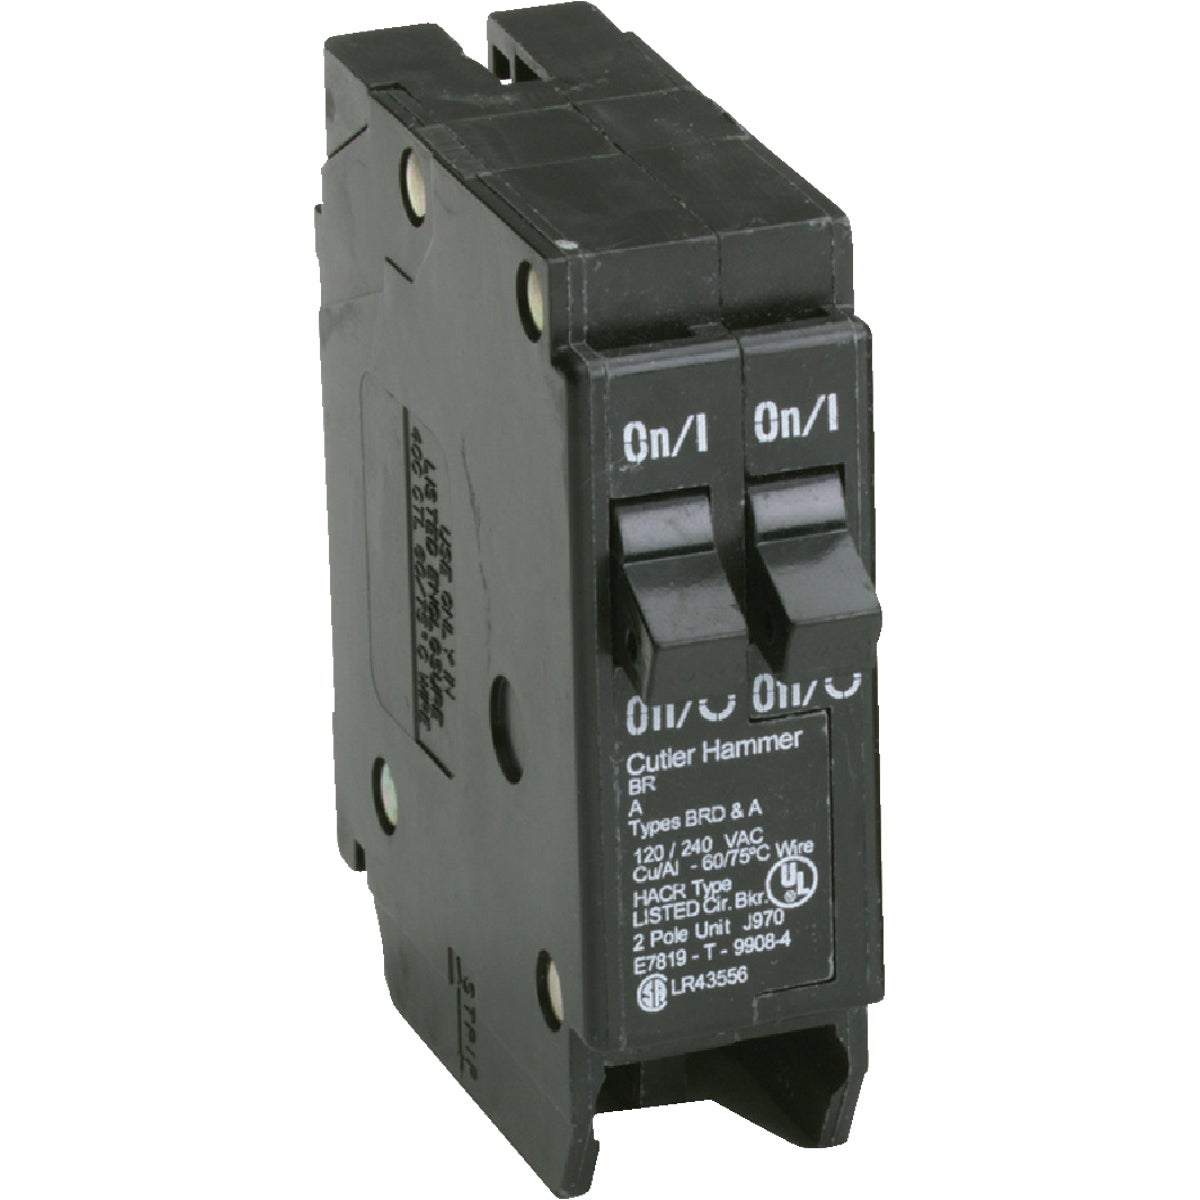 20A/20A CIRCUIT BREAKER - BR2020 by Eaton Corporation